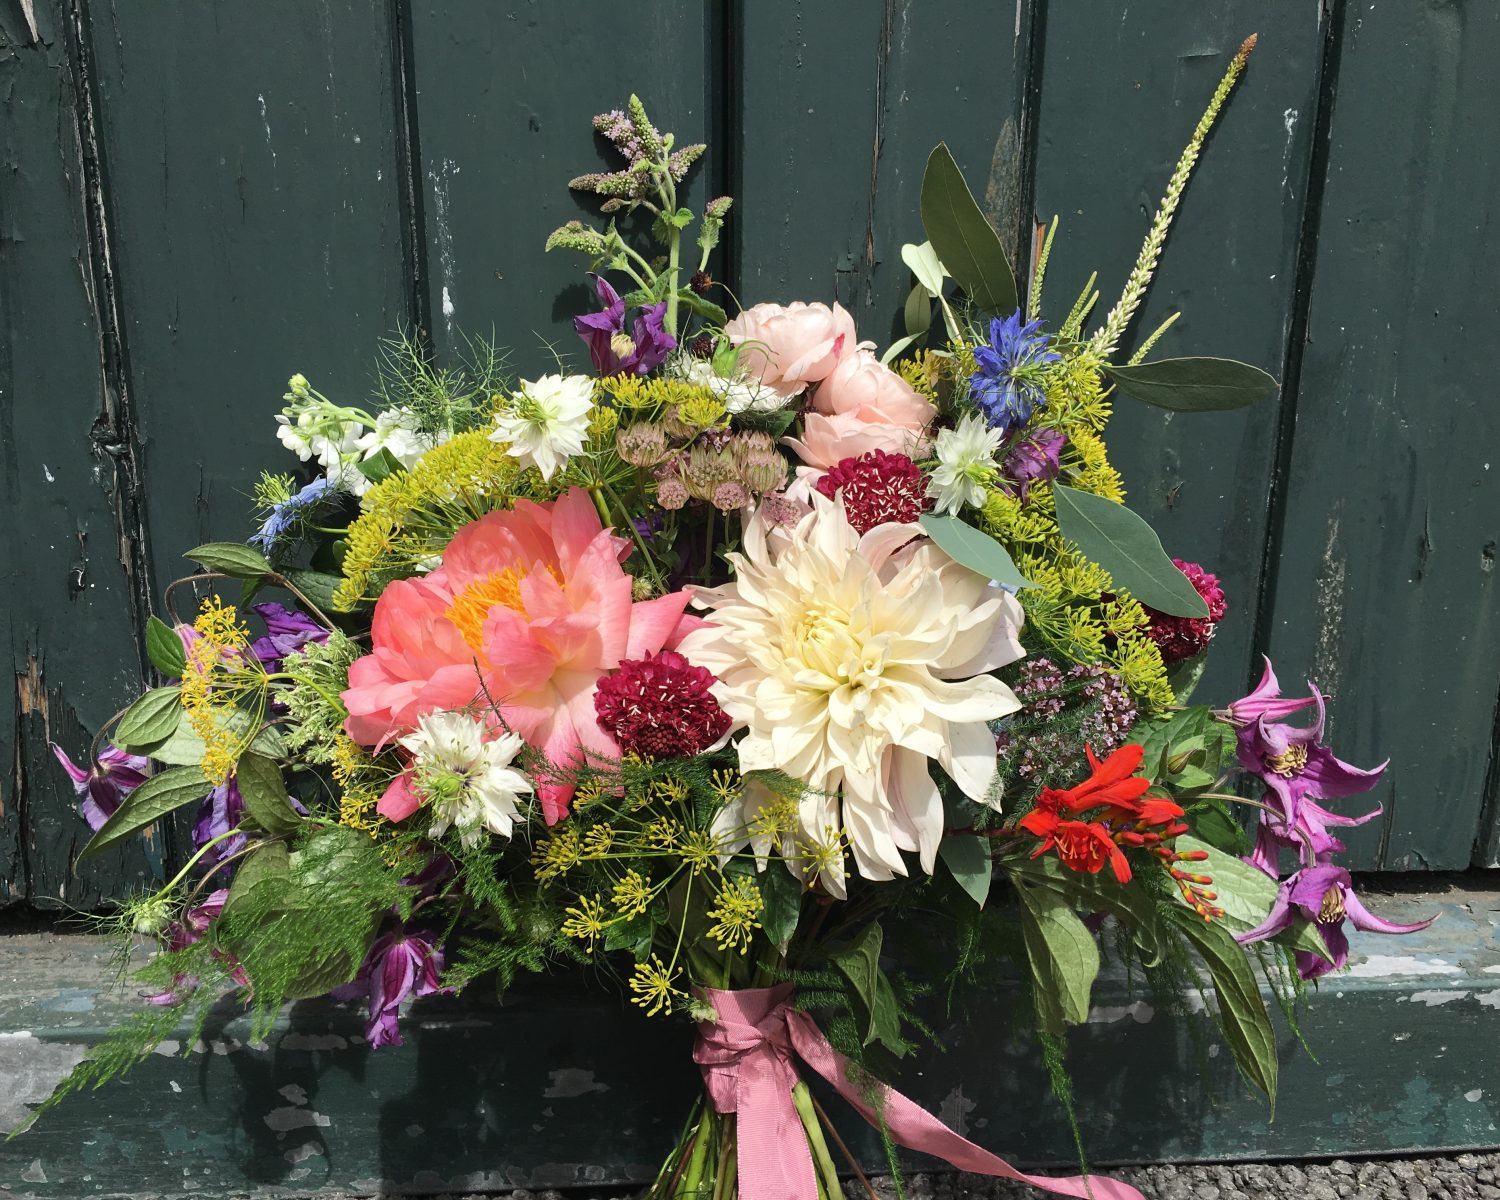 Floral Design, Belle and Bea Flowers, Wiltshire